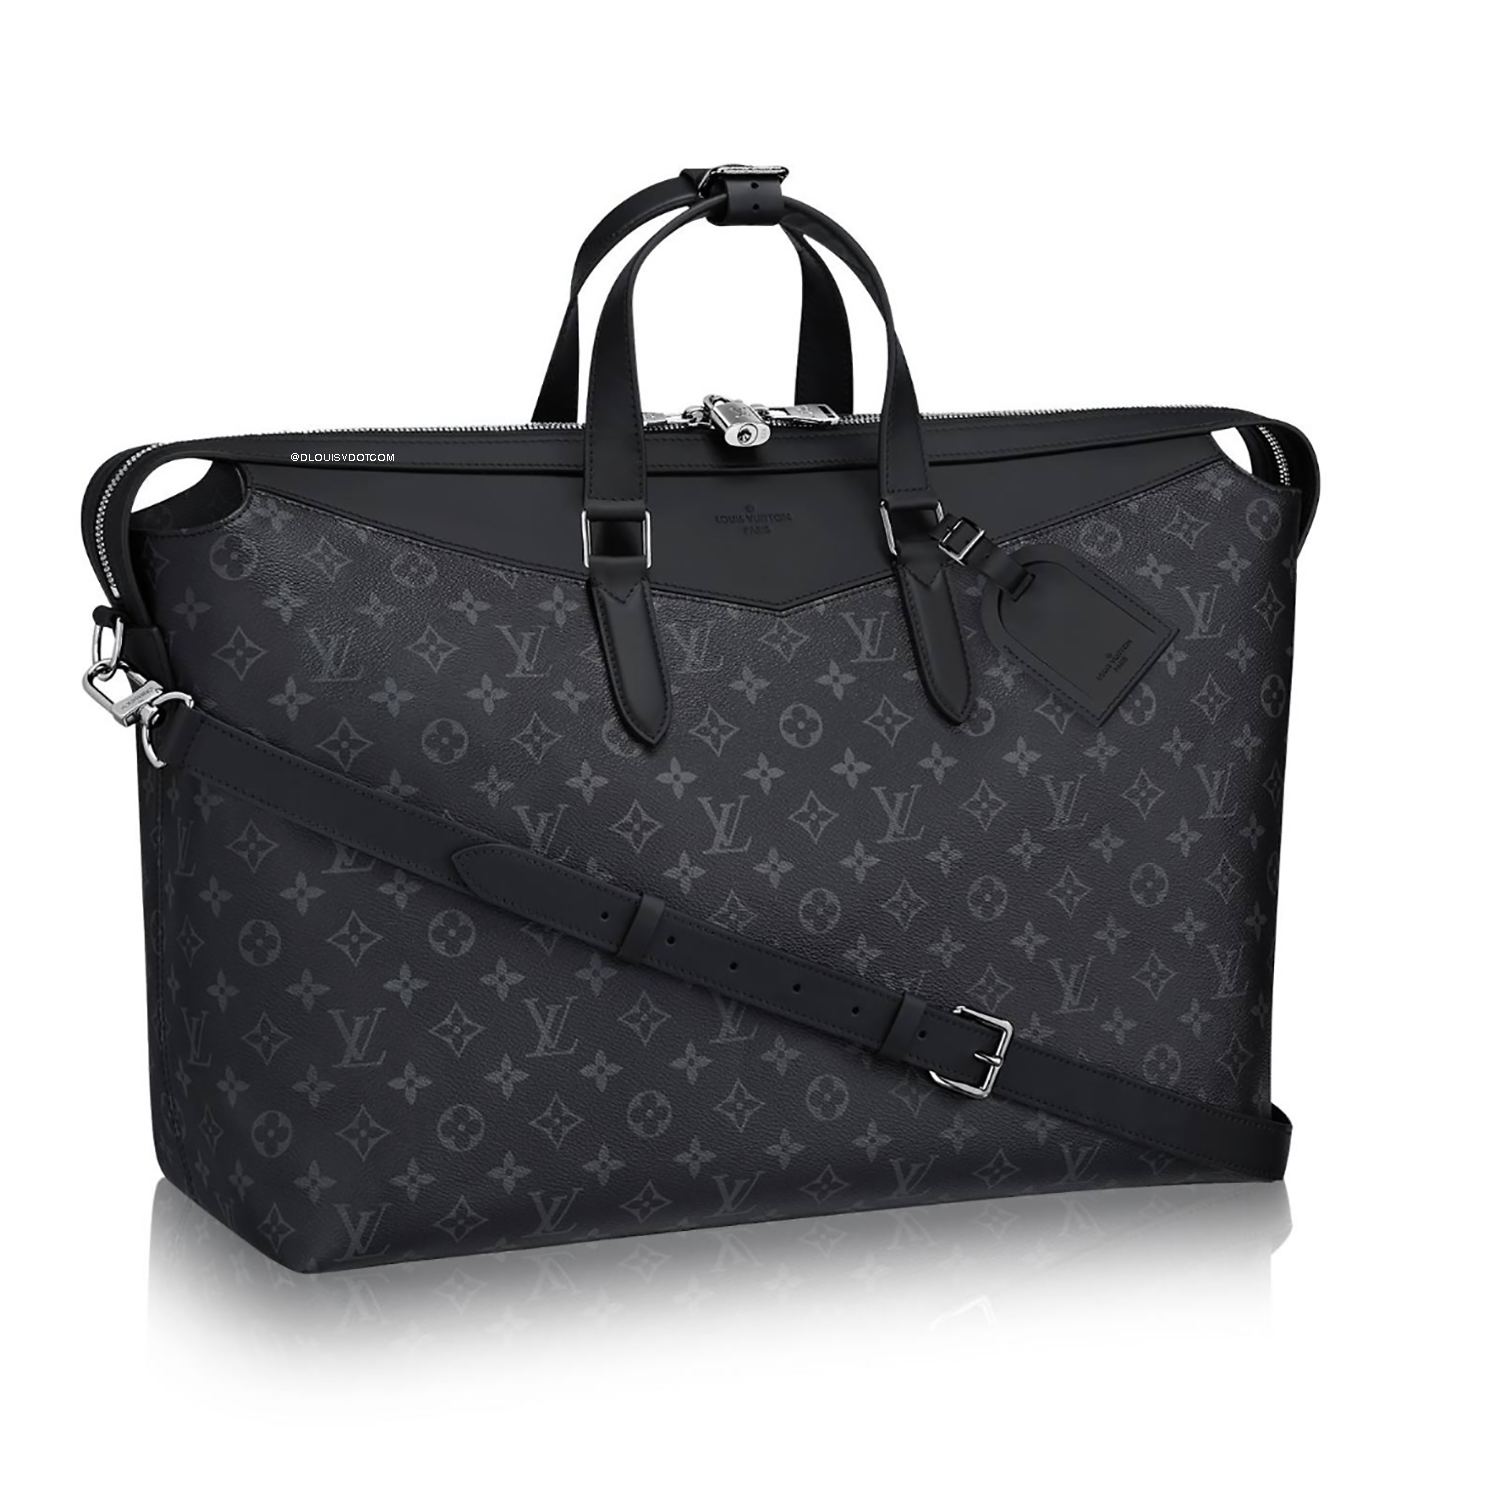 TRAVEL BAG VOYAGER - €1870 $M58870MONOGRAM ECLIPSE